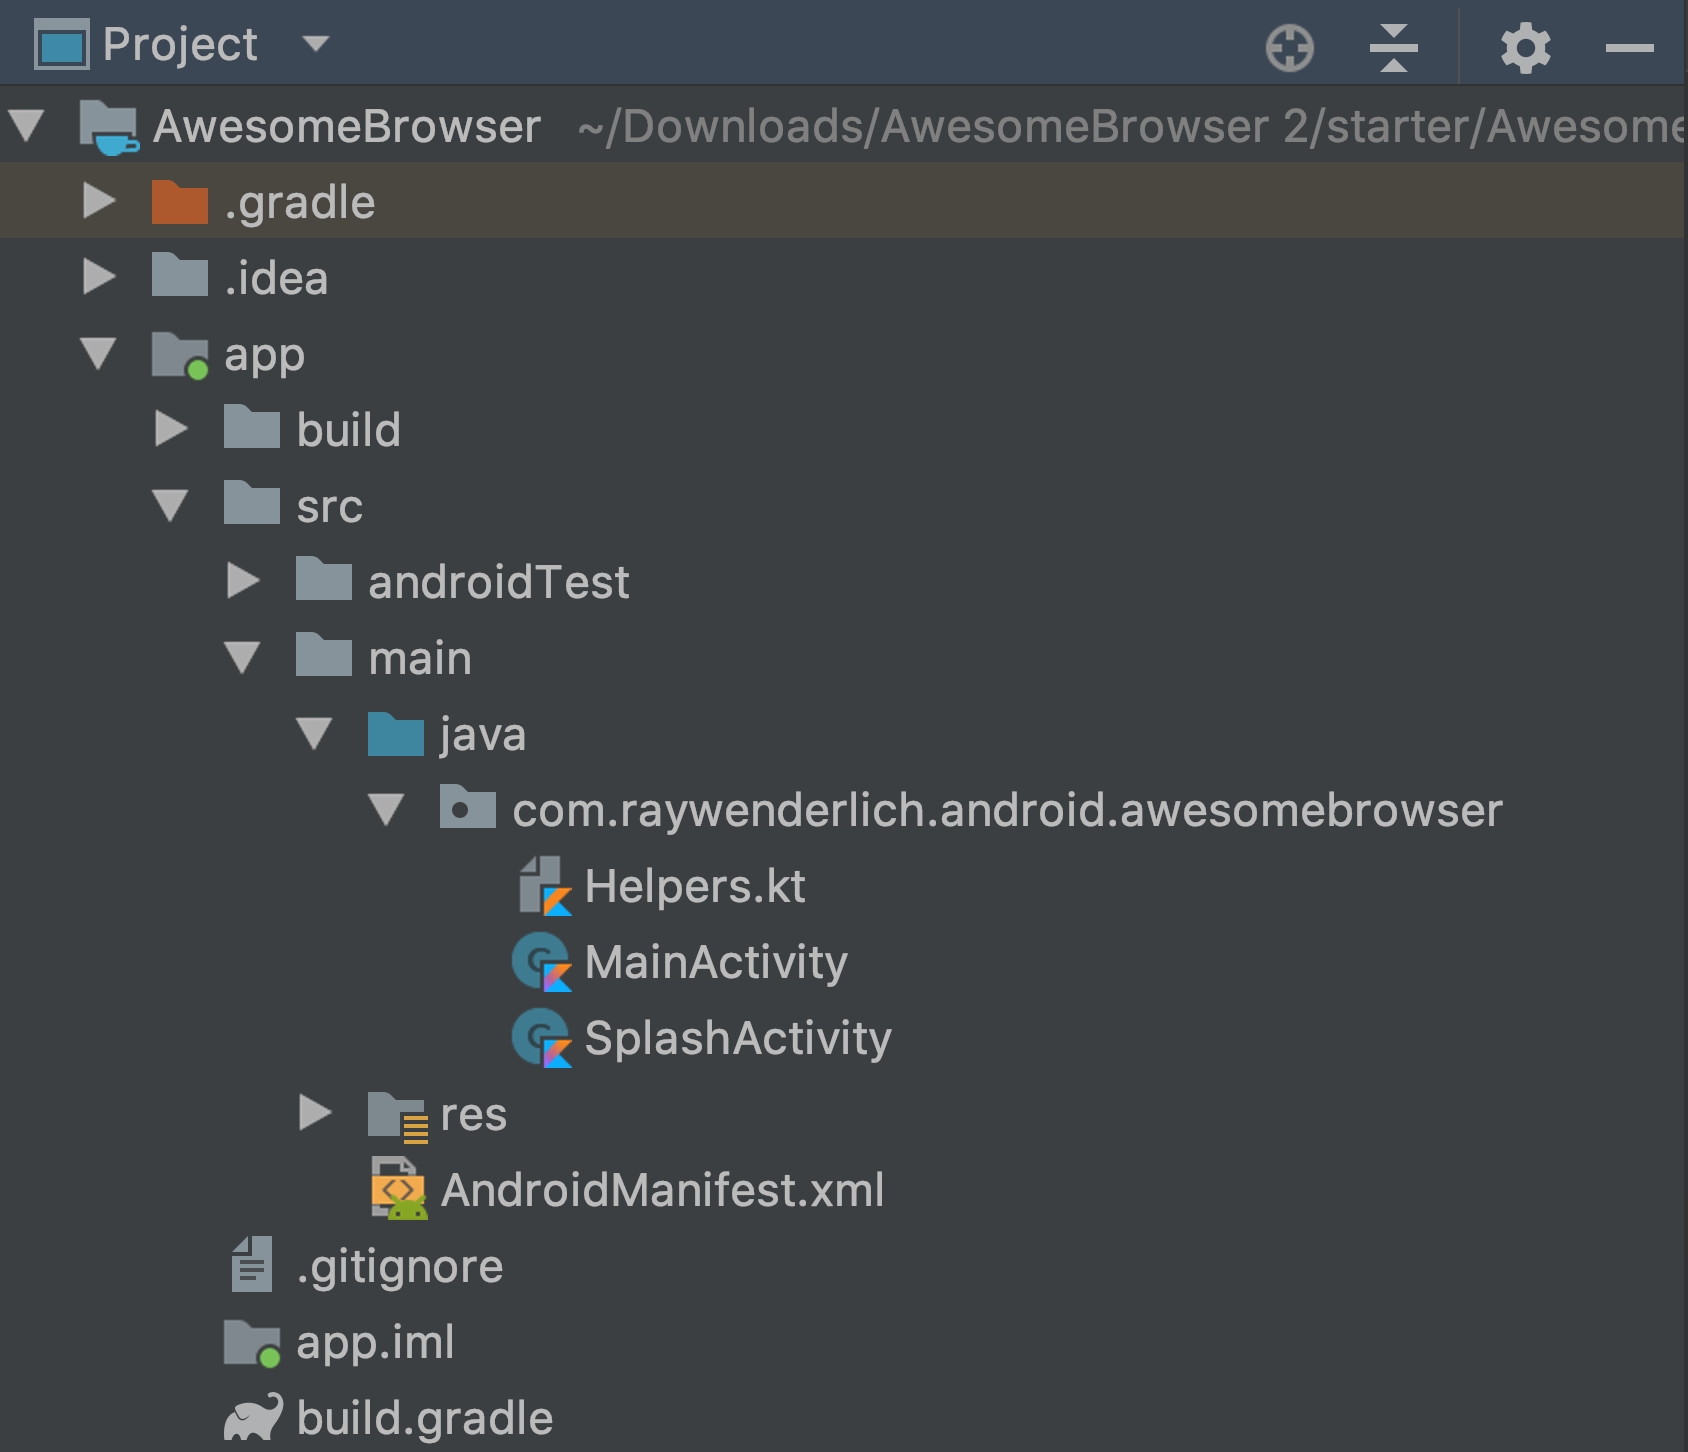 AwesomeBrowser project structure